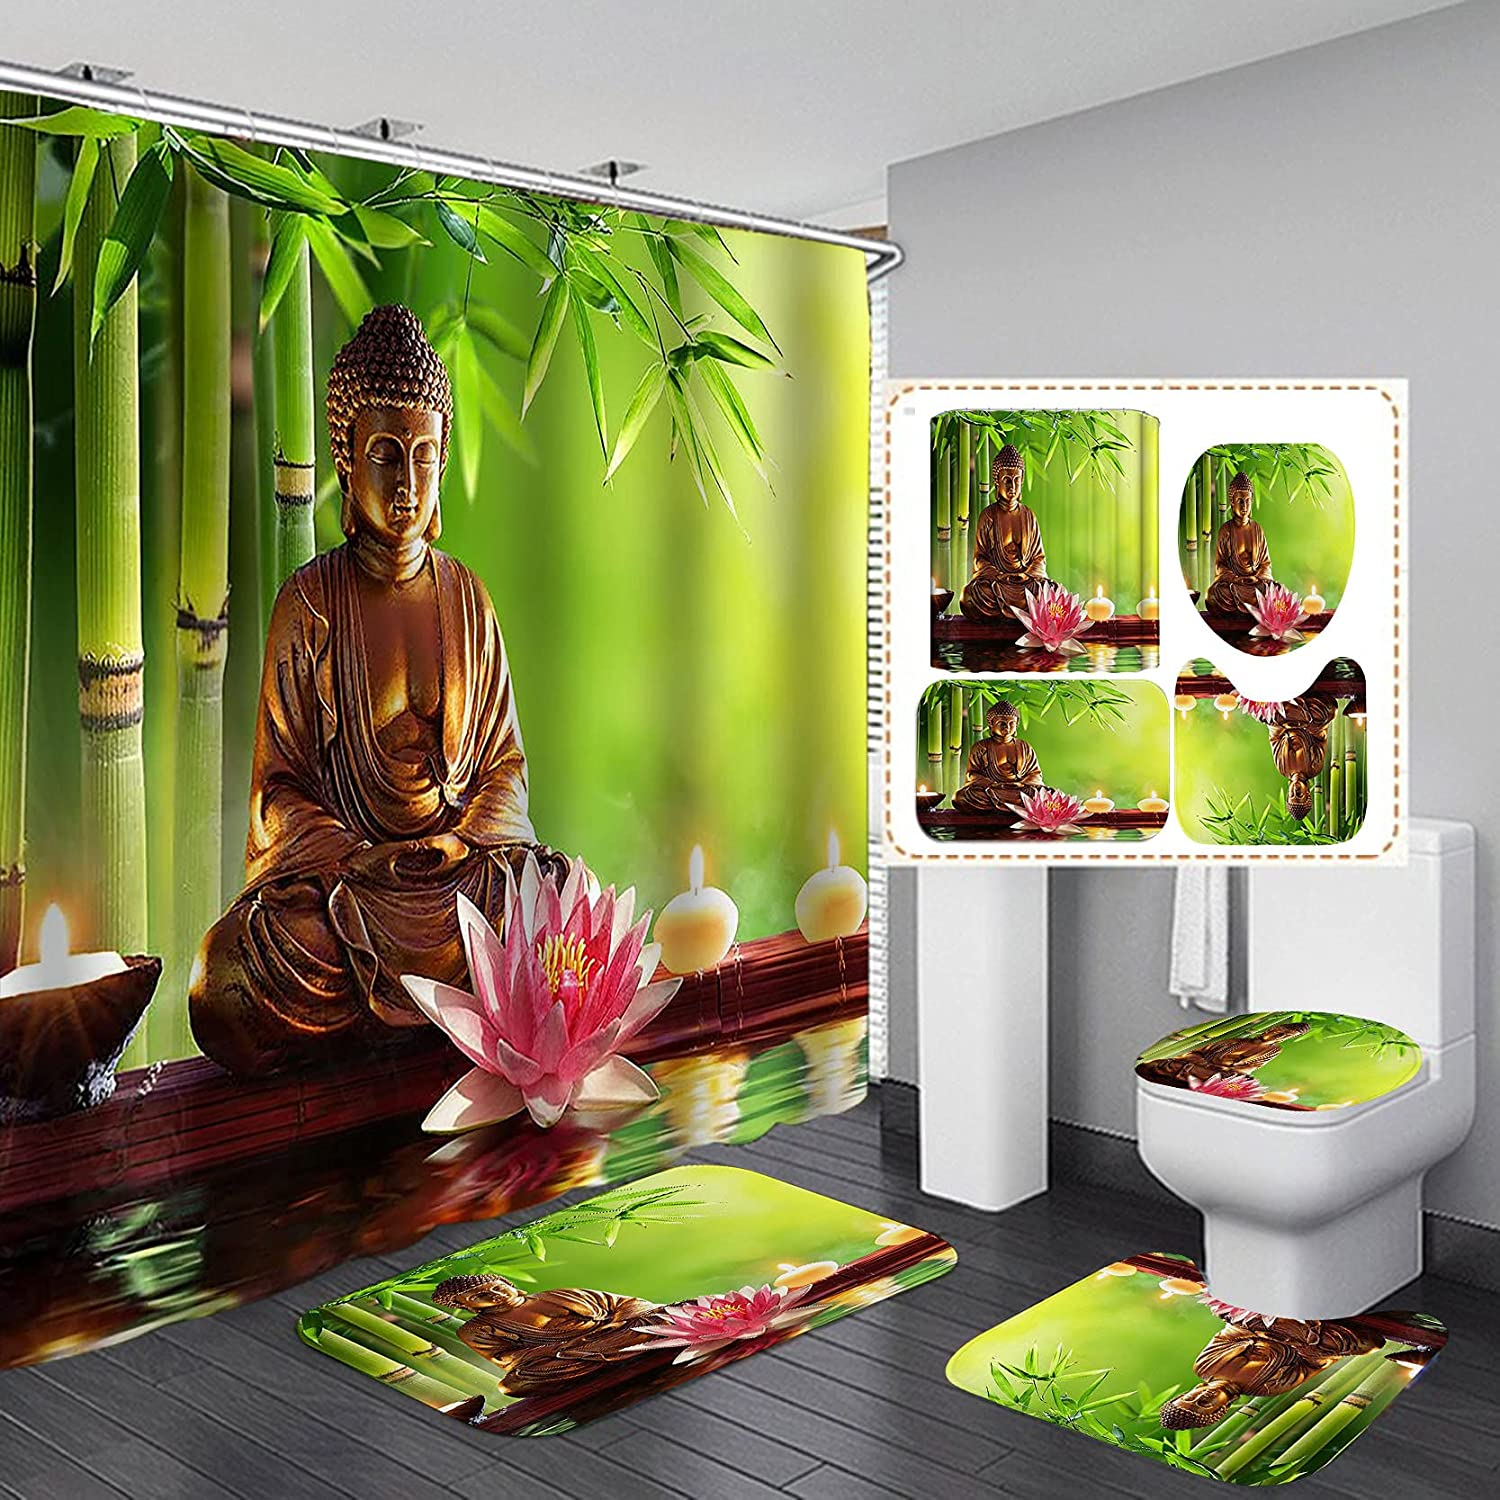 CamilleAndrew 4PCS Set Gold Buda Pink Selling Albuquerque Mall Statue Lo Curtain Shower